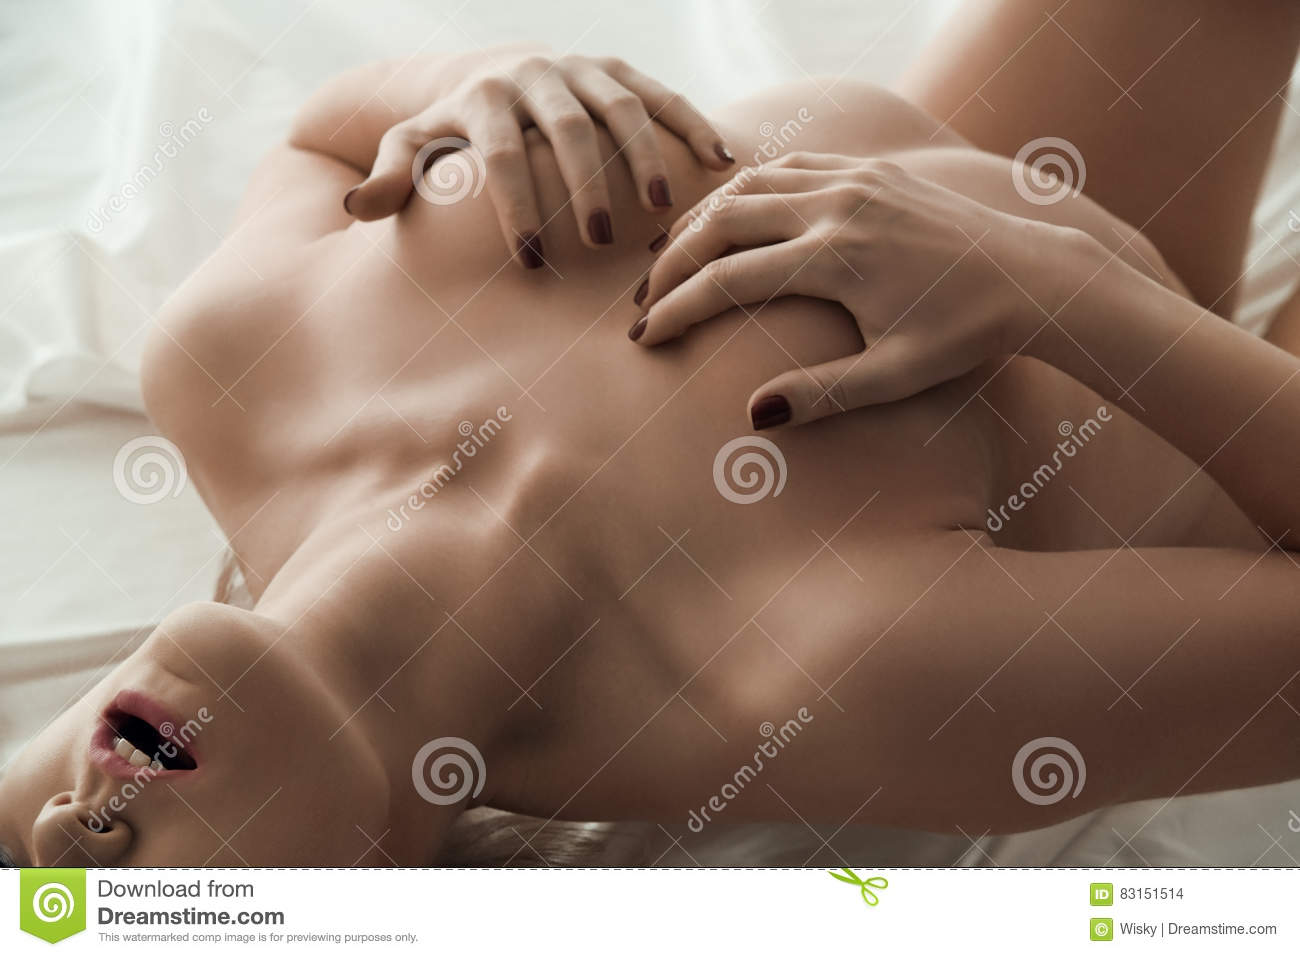 Naked Girl Holding Hands On Breasts Lying In Bed Stock Photo